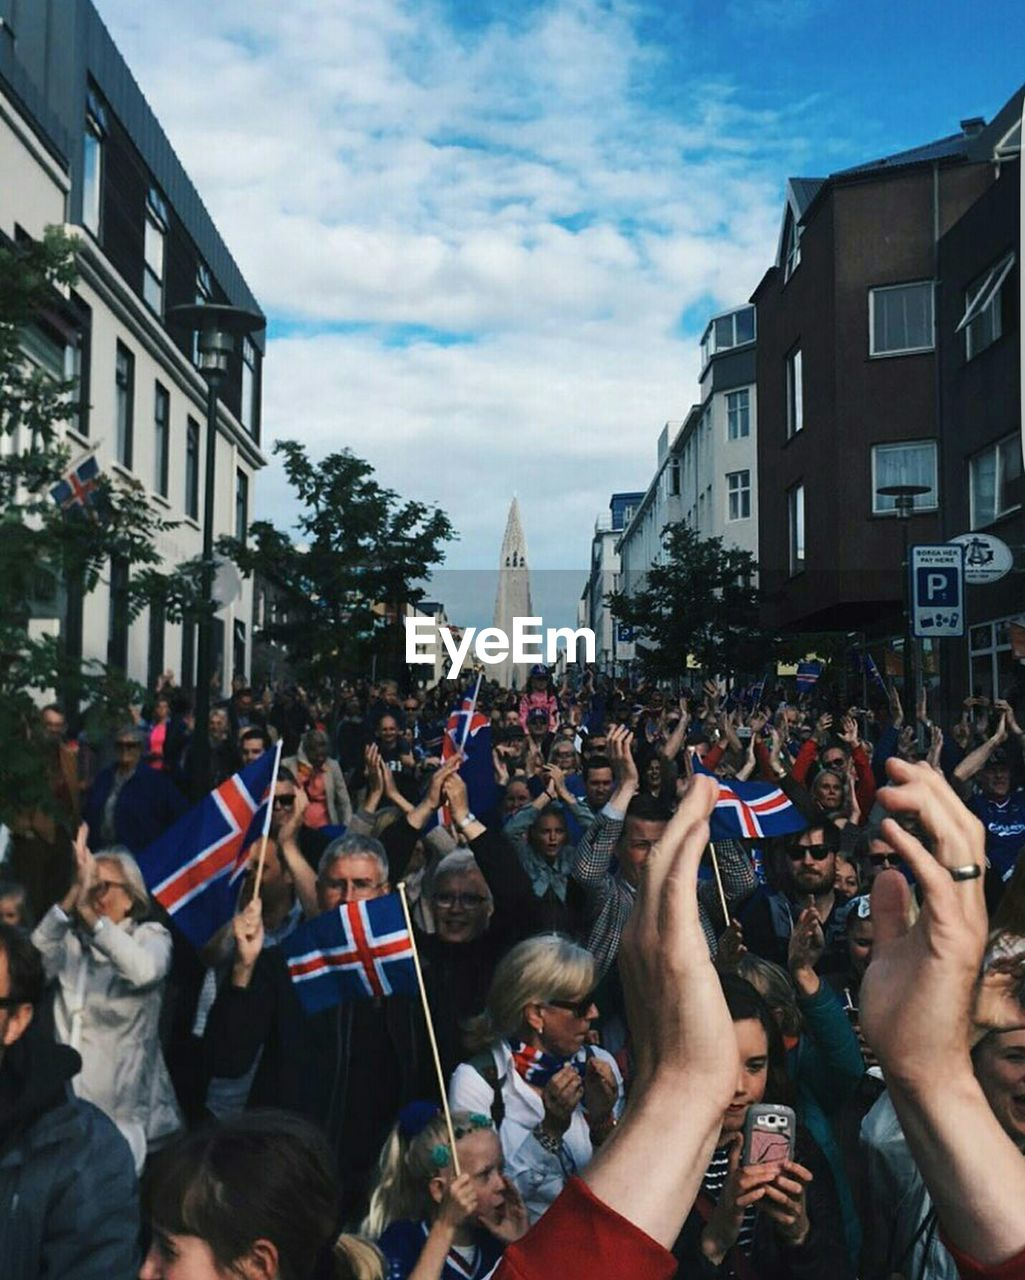 Soccer Fans Celebrating With Icelandic Flags On Street In City